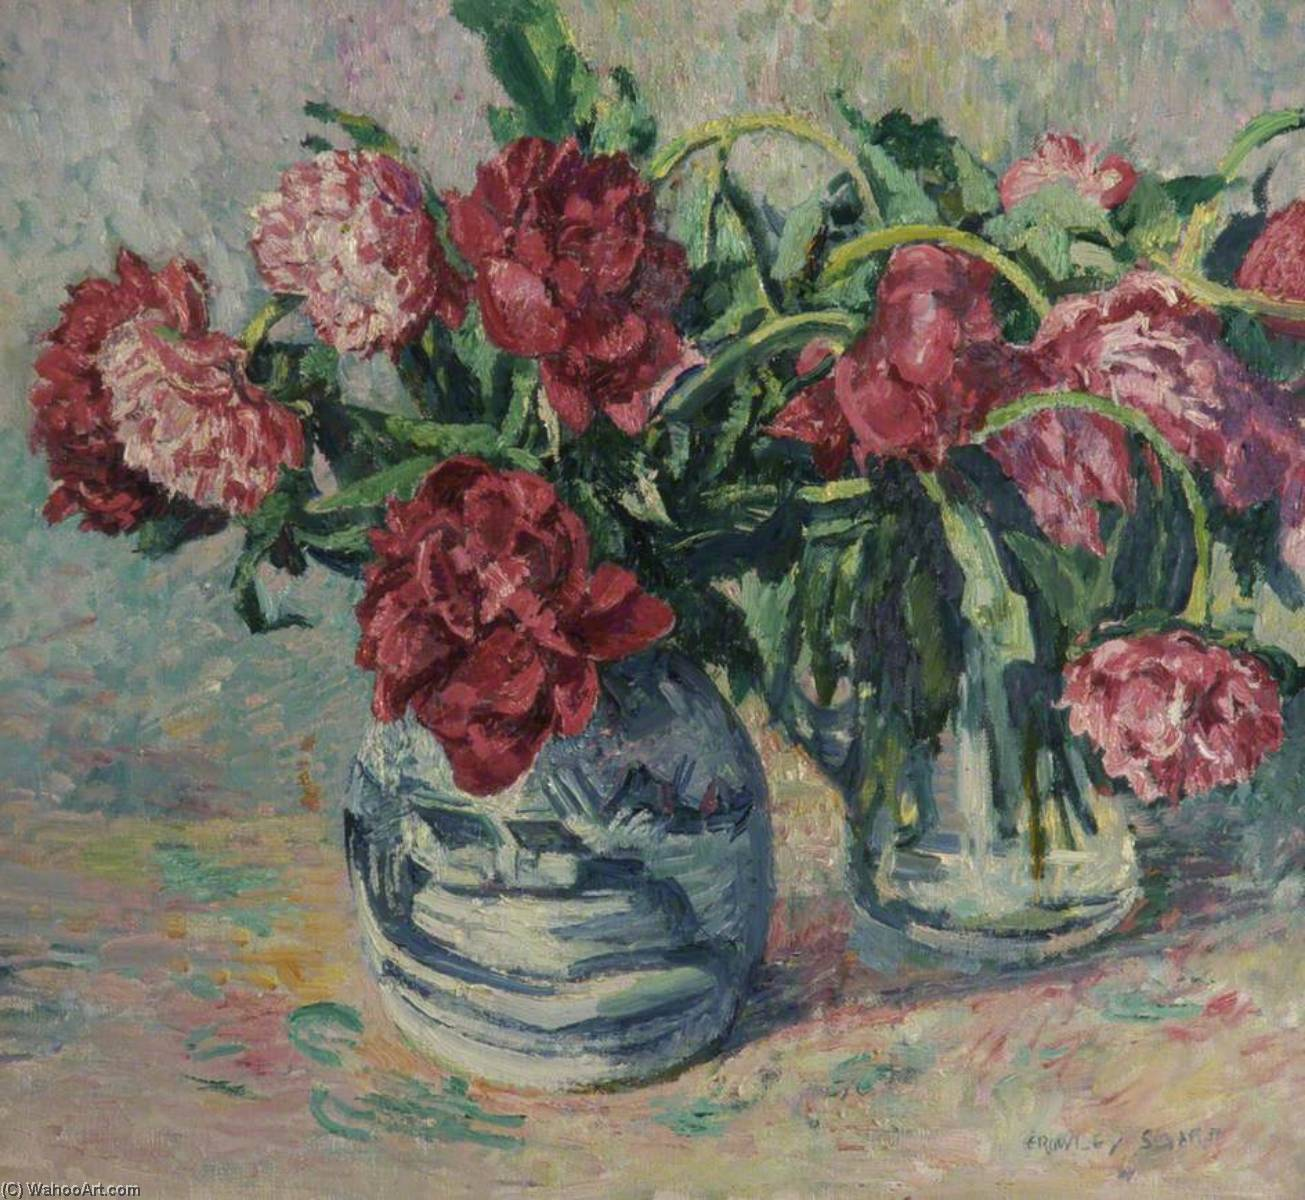 Peonies by Rowley Smart | Oil Painting | WahooArt.com